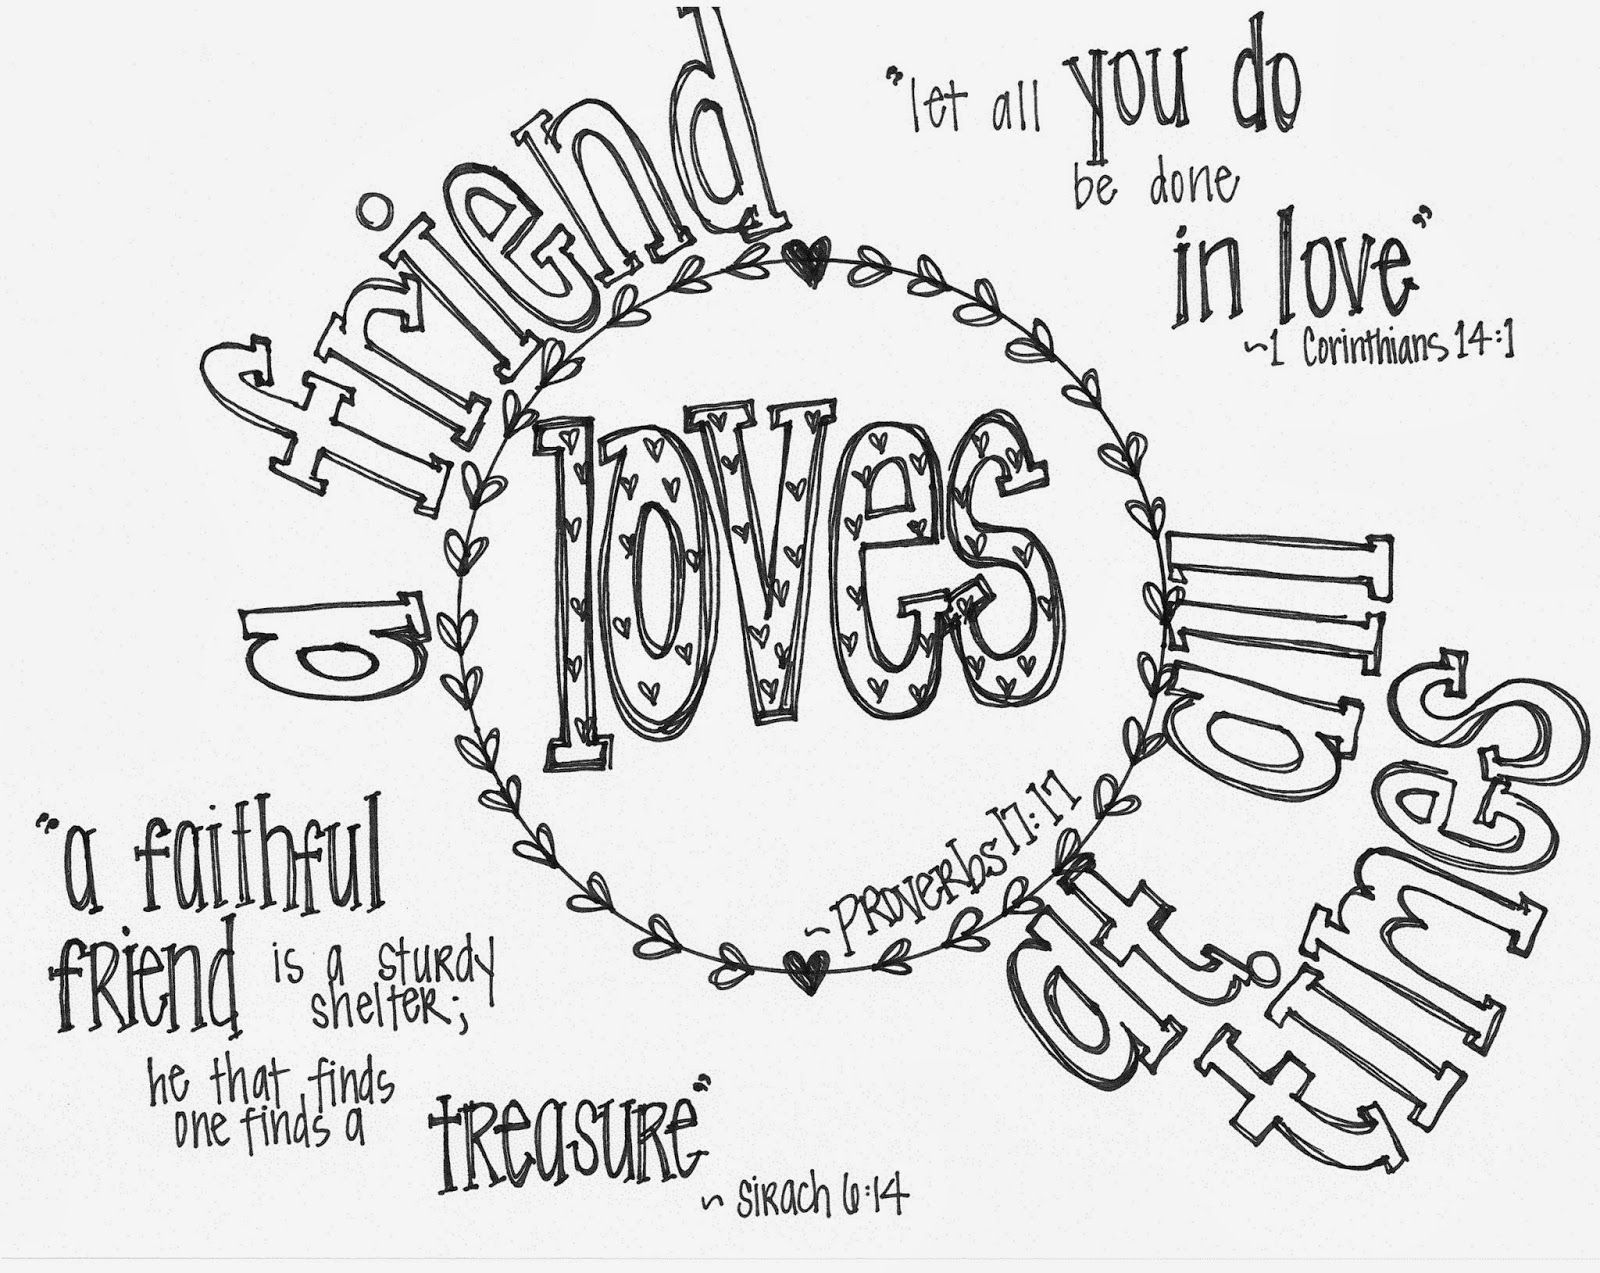 Free Printable Valentines Coloring Page With Bible Verses A Friend Loves At All Times